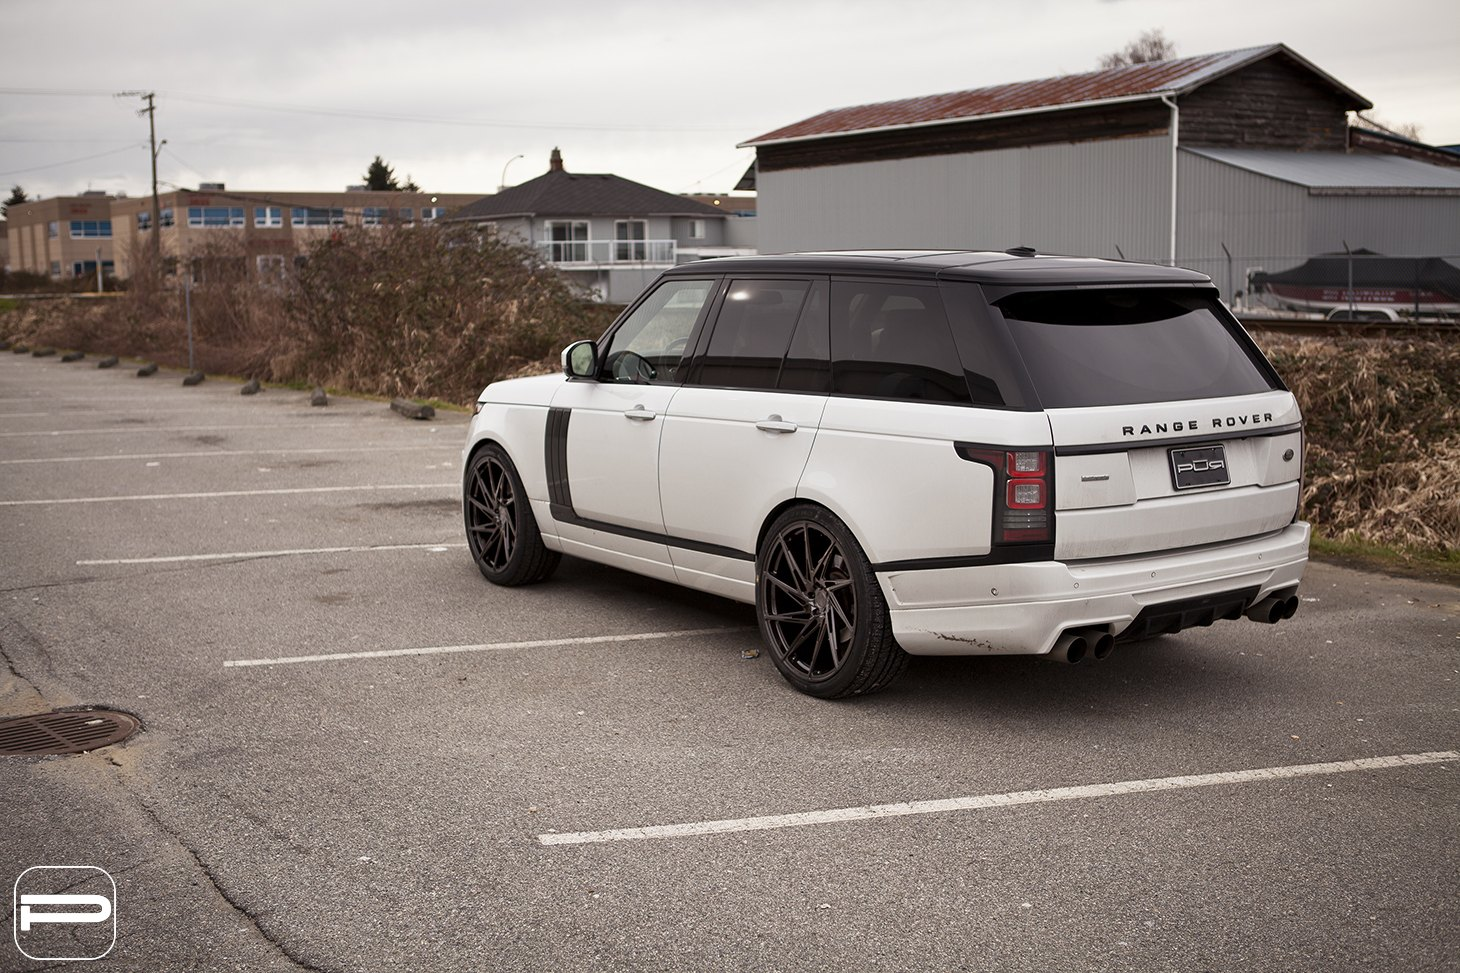 exclusive white range rover boasting nice custom parts gallery. Black Bedroom Furniture Sets. Home Design Ideas